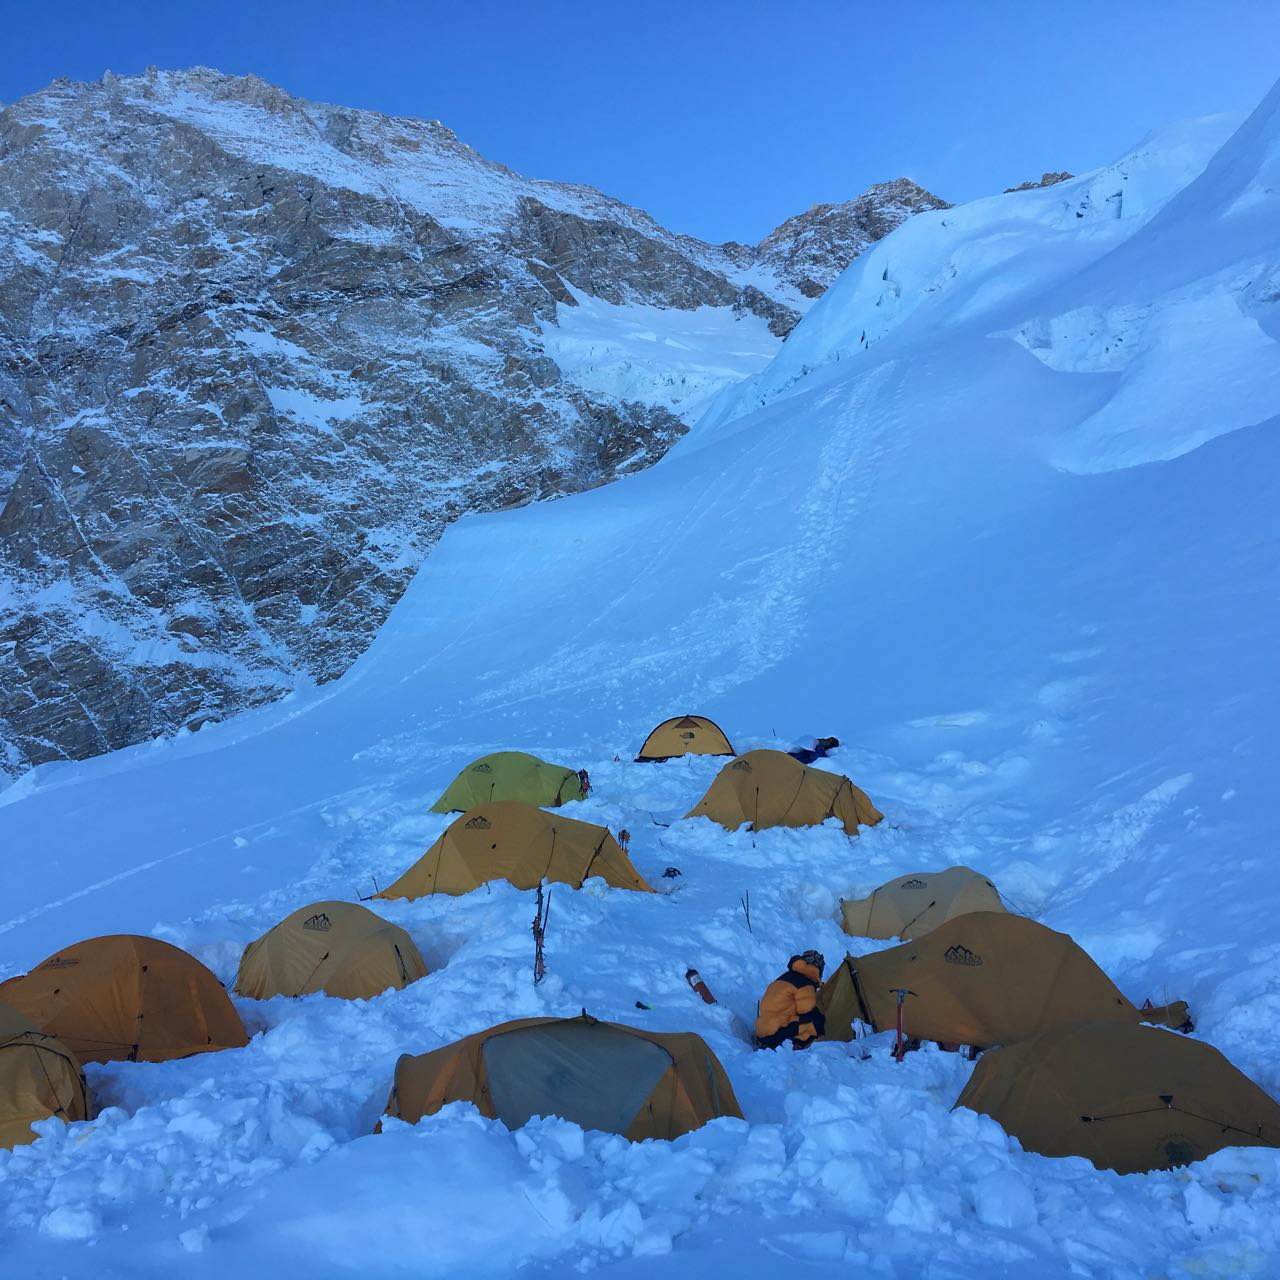 Camp II on Mt. Kanchenjunga Expedition